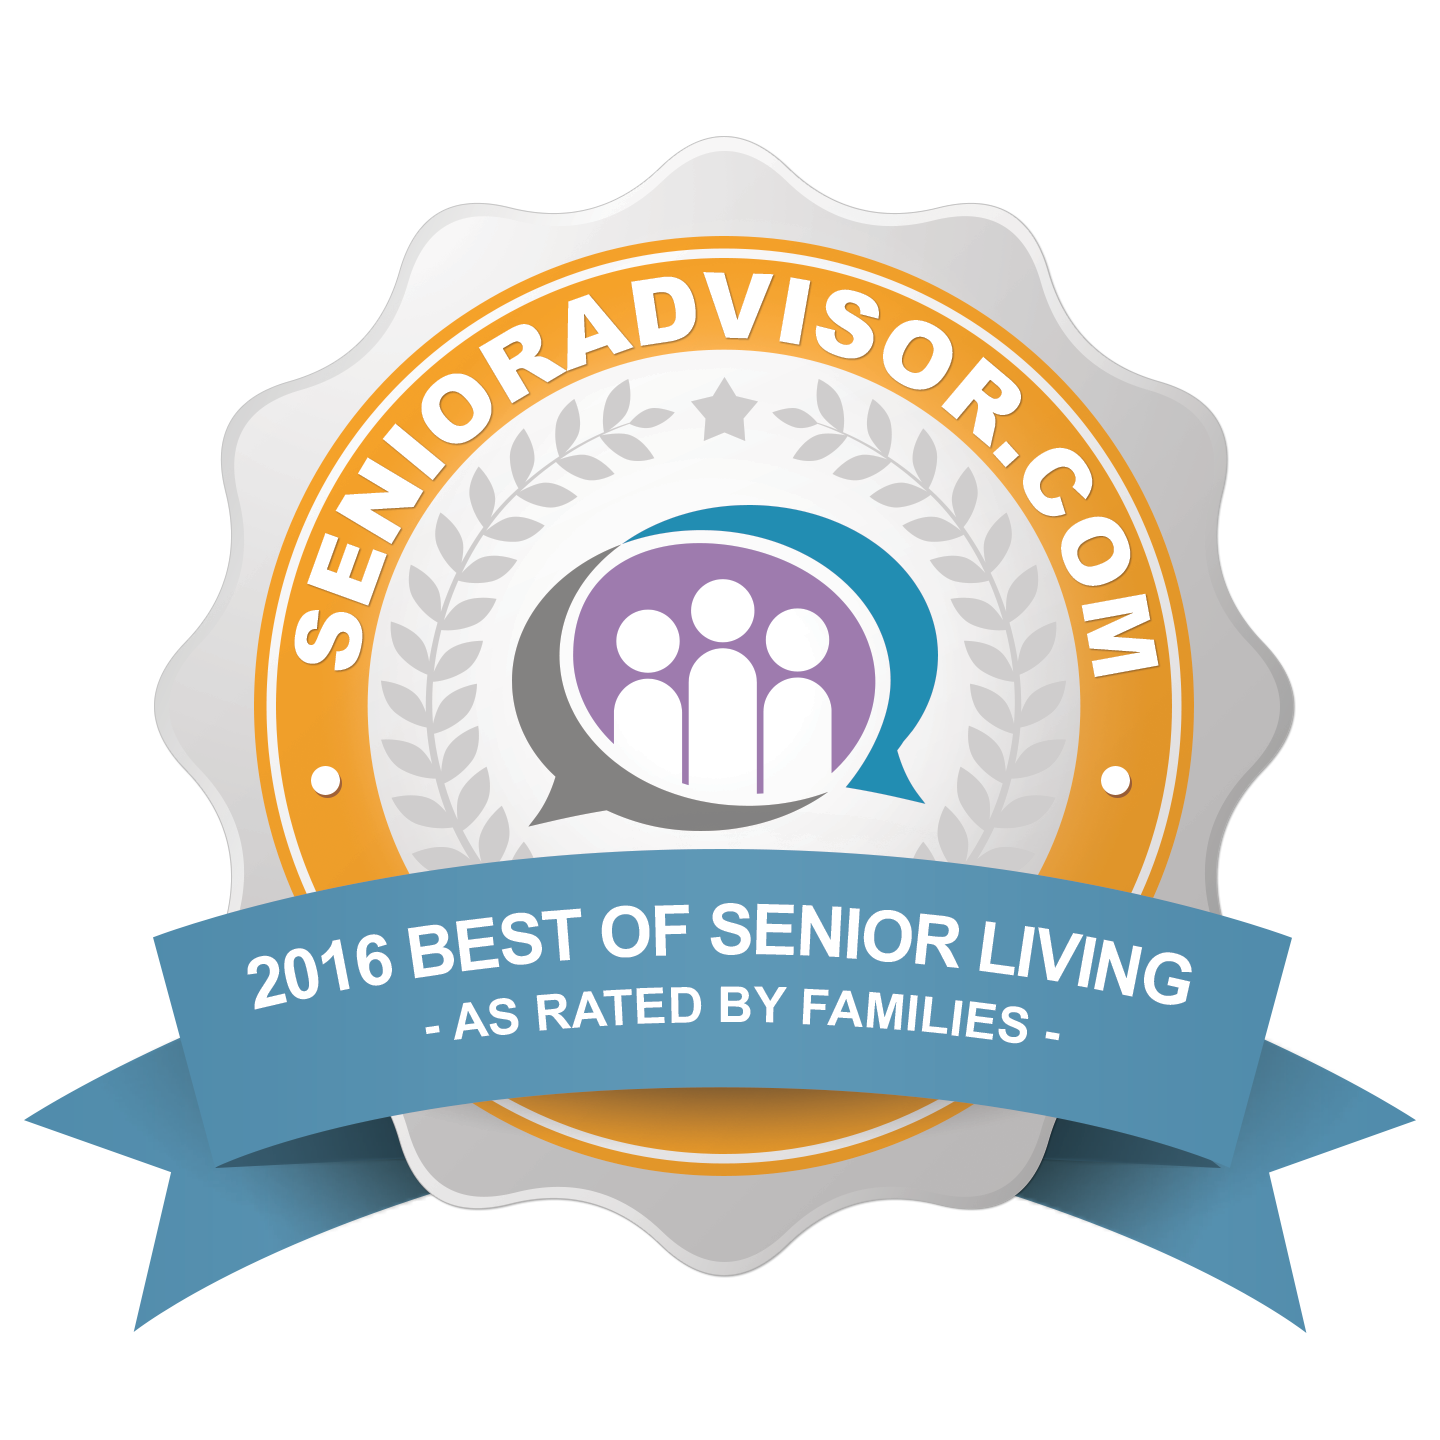 http://senioradvisor-production.s3.amazonaws.com/award_winners/2016-senior-living-award.png